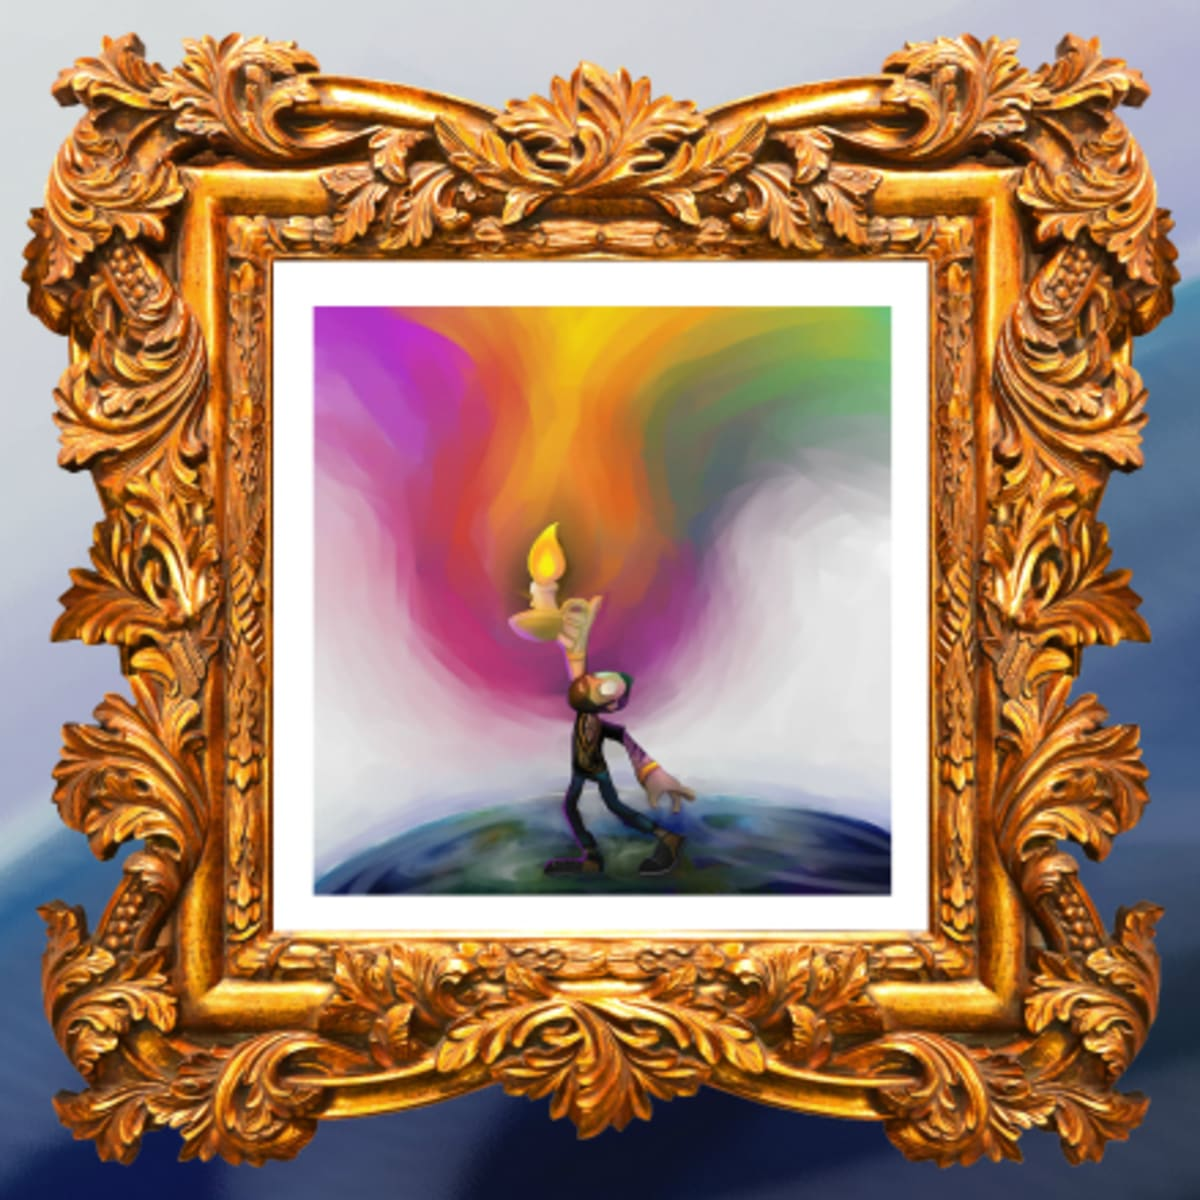 jon bellion definition album download